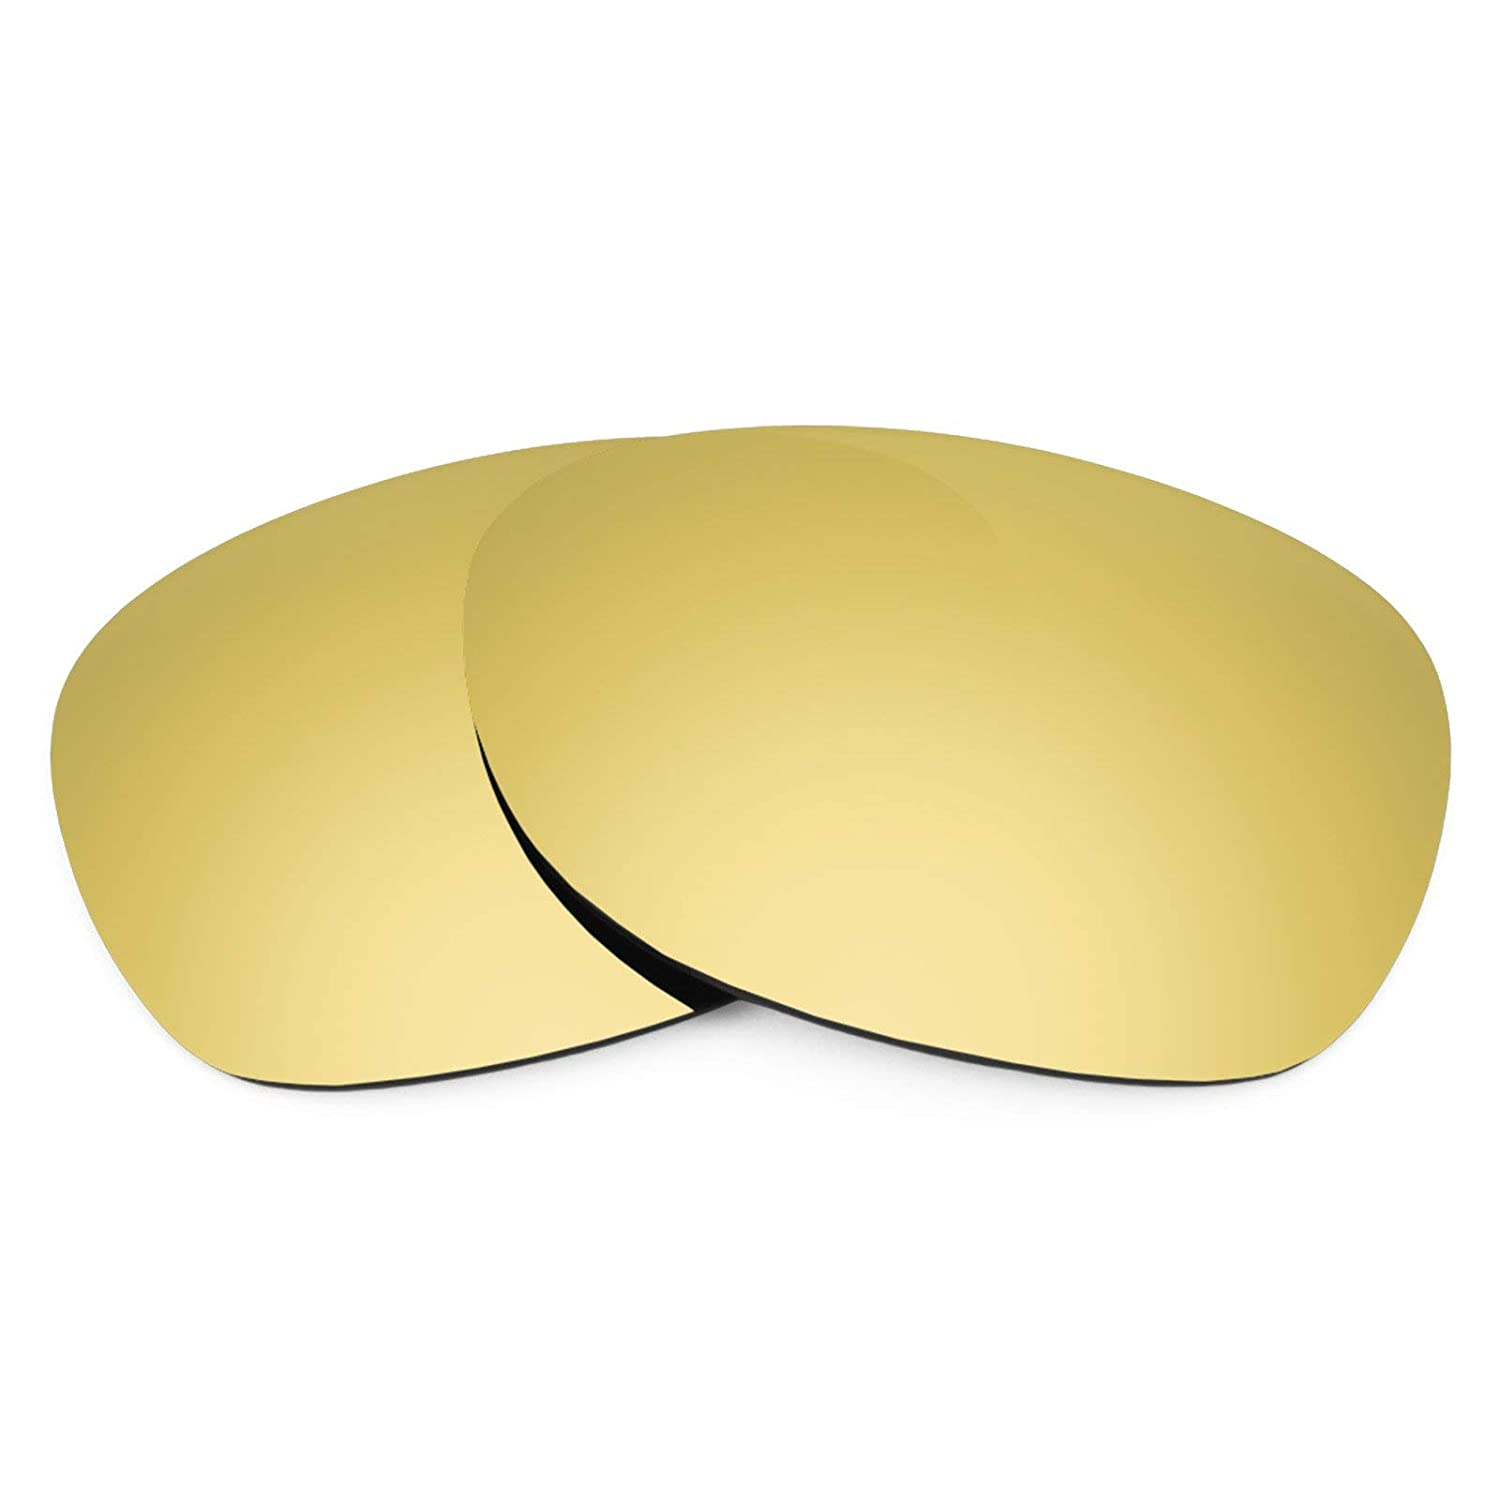 1f32408dd4 Revant Polarized Replacement Lenses for Ray-Ban New Wayfarer 52mm RB2132  Elite Flare Gold MirrorShield®  Amazon.ca  Sports   Outdoors